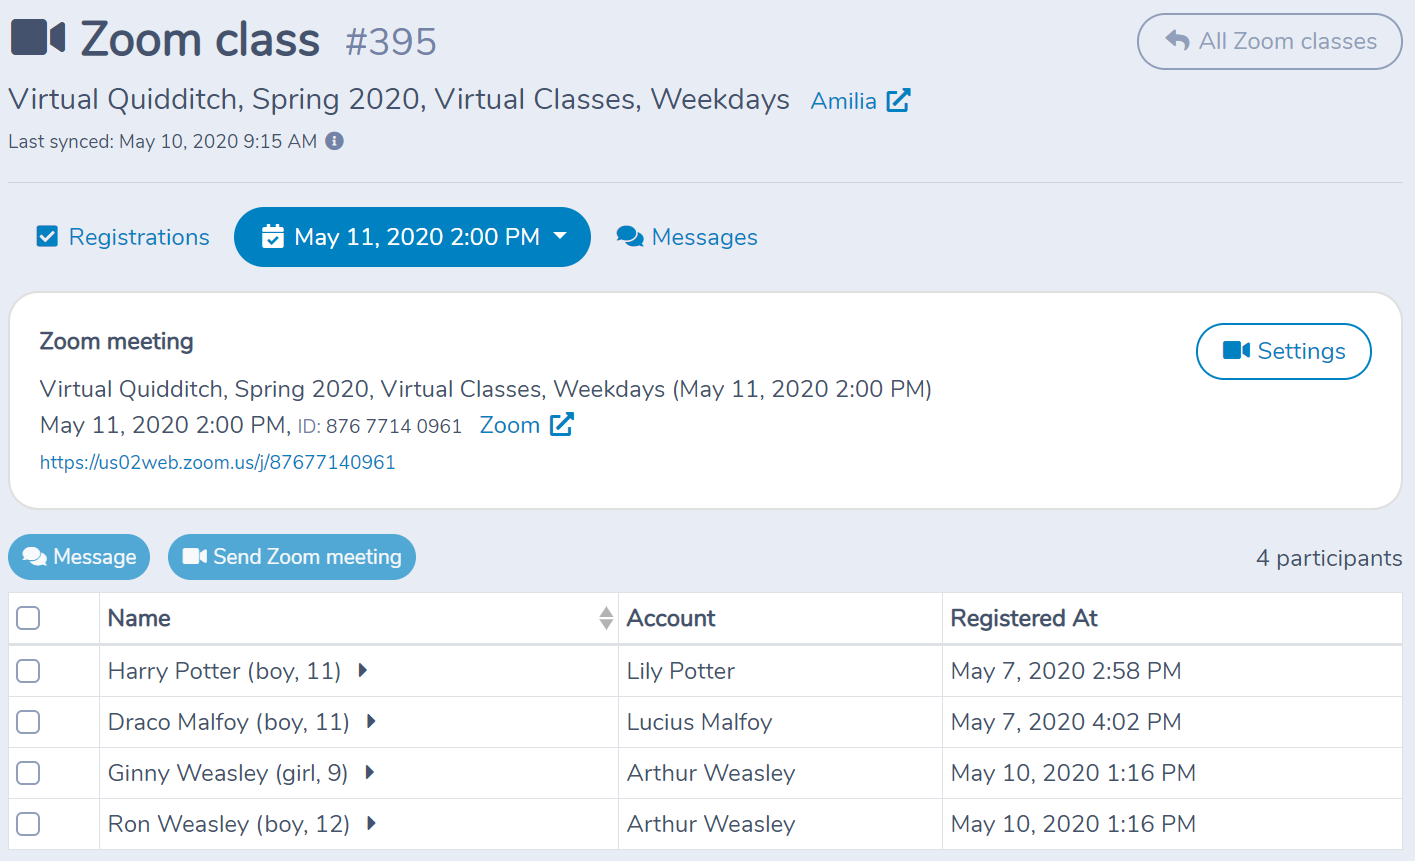 Running a Zoom class with Activity Messenger